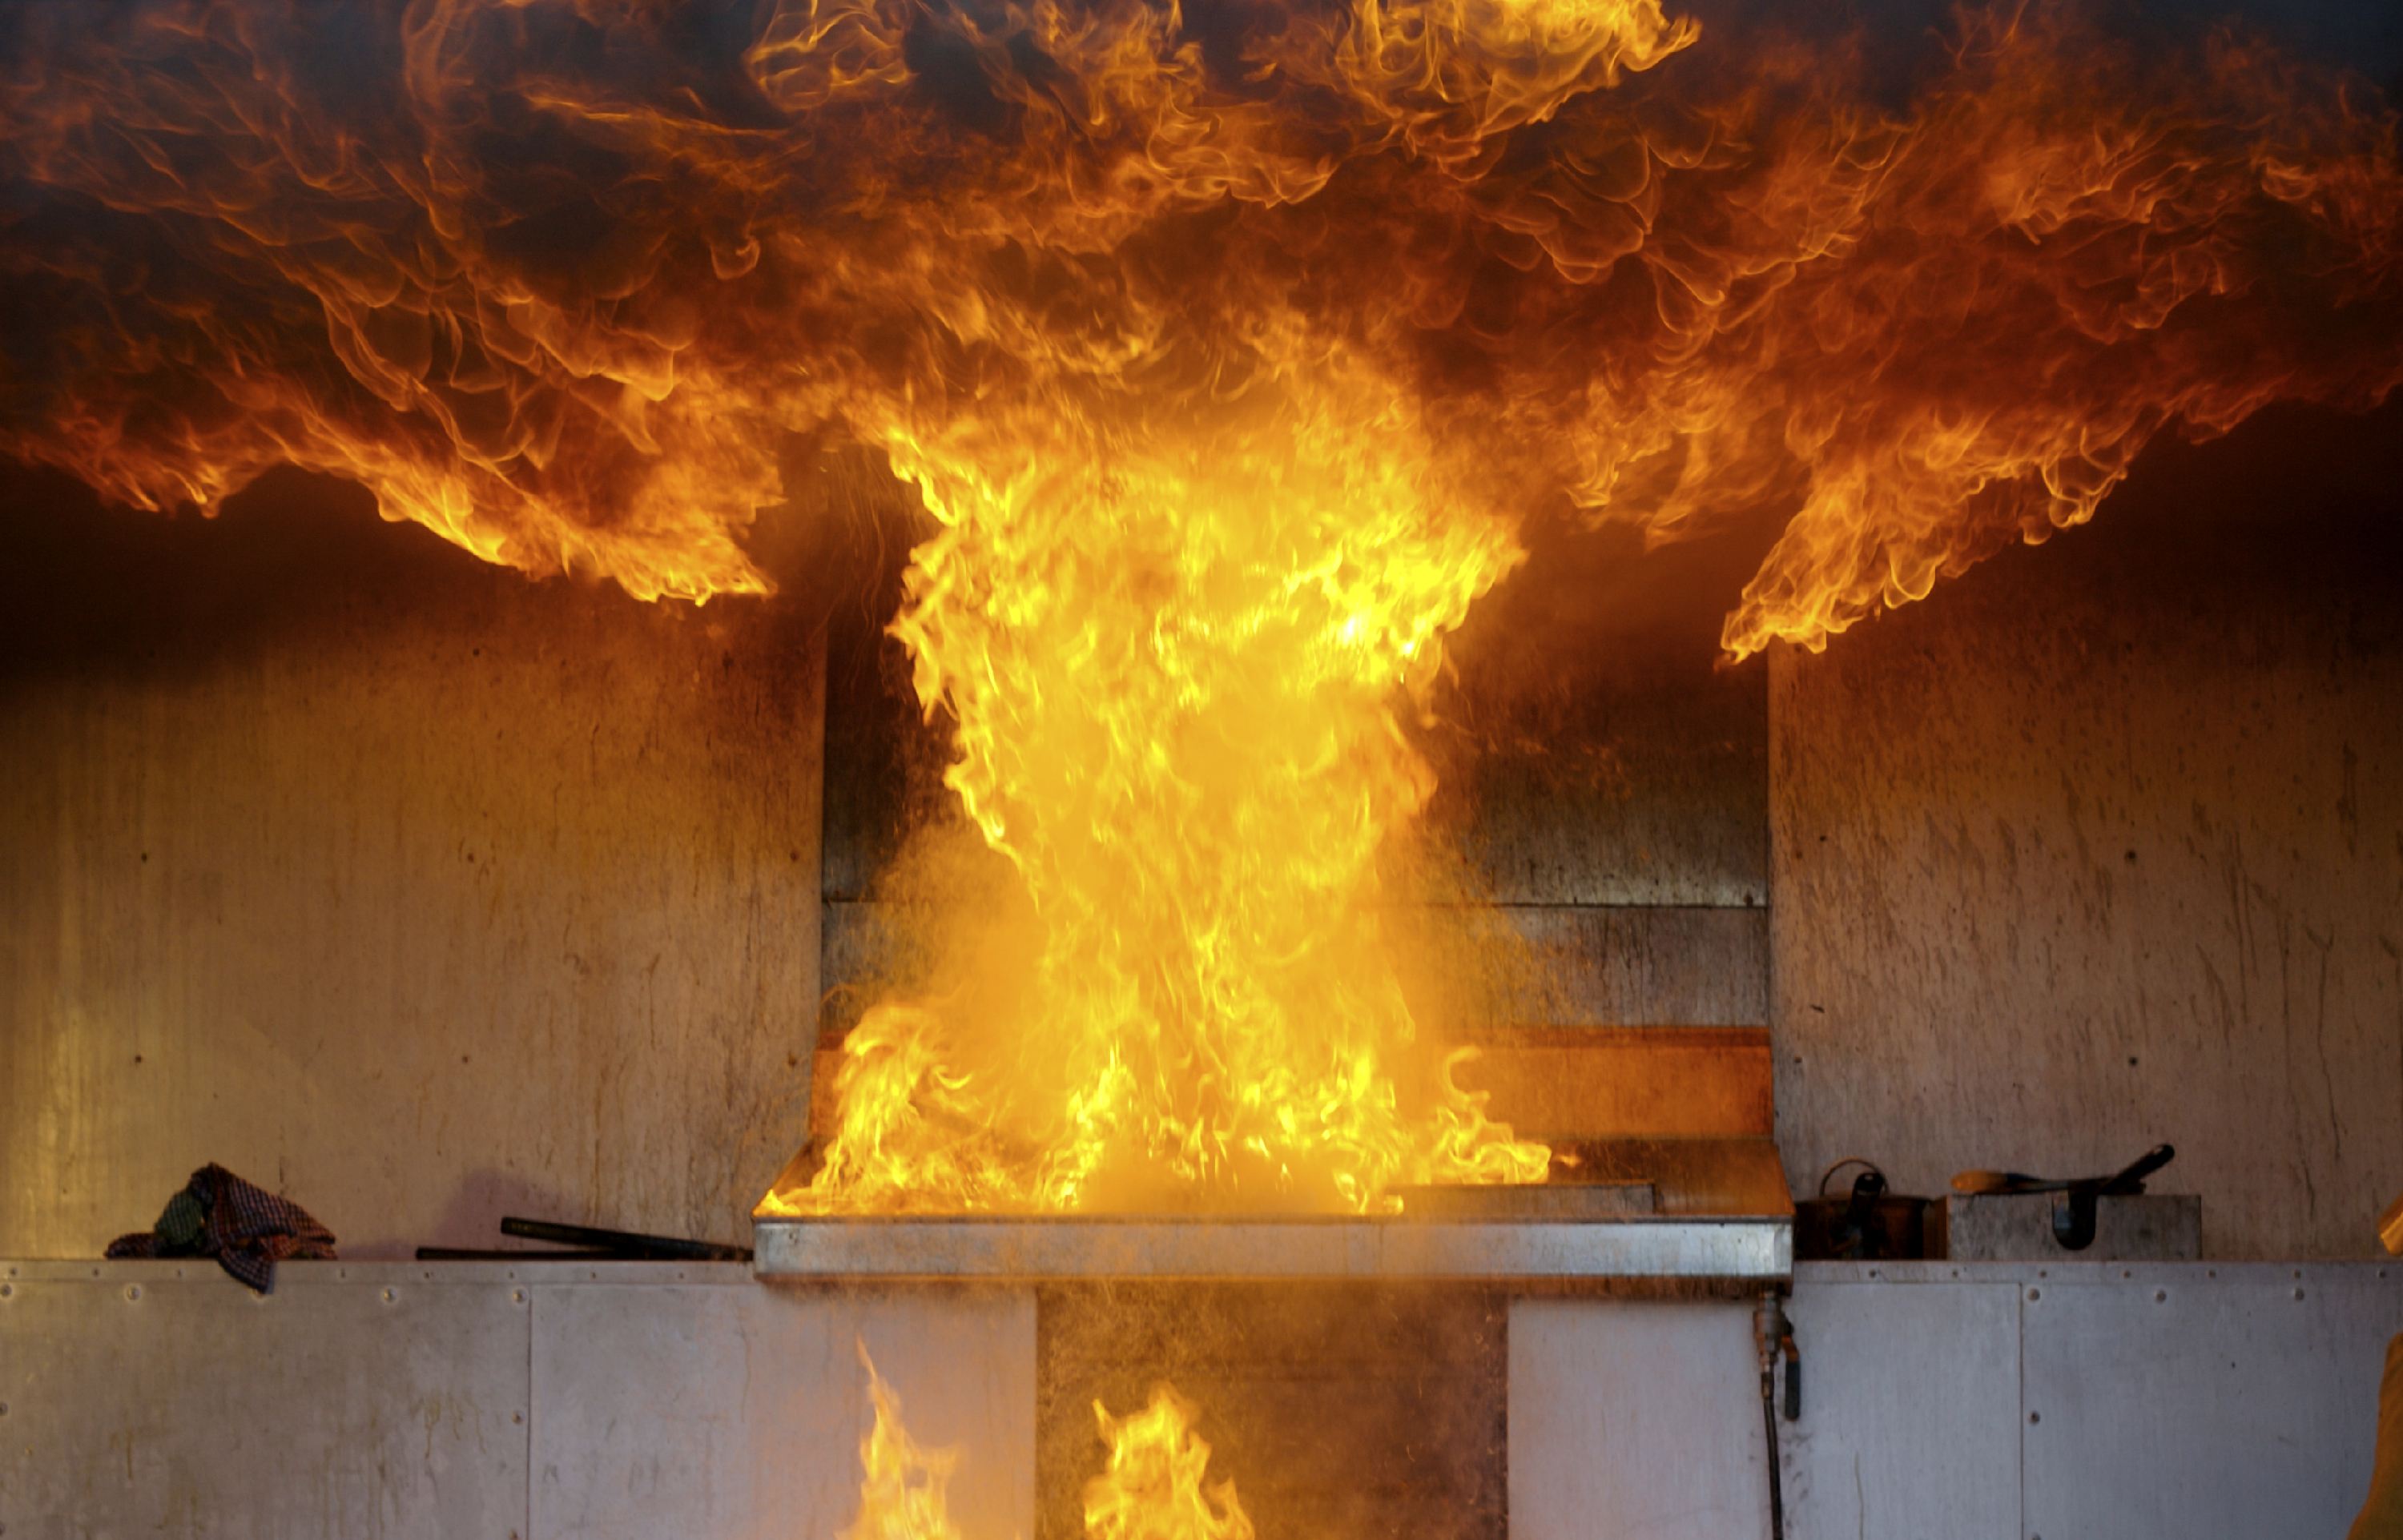 fire in a kitchen